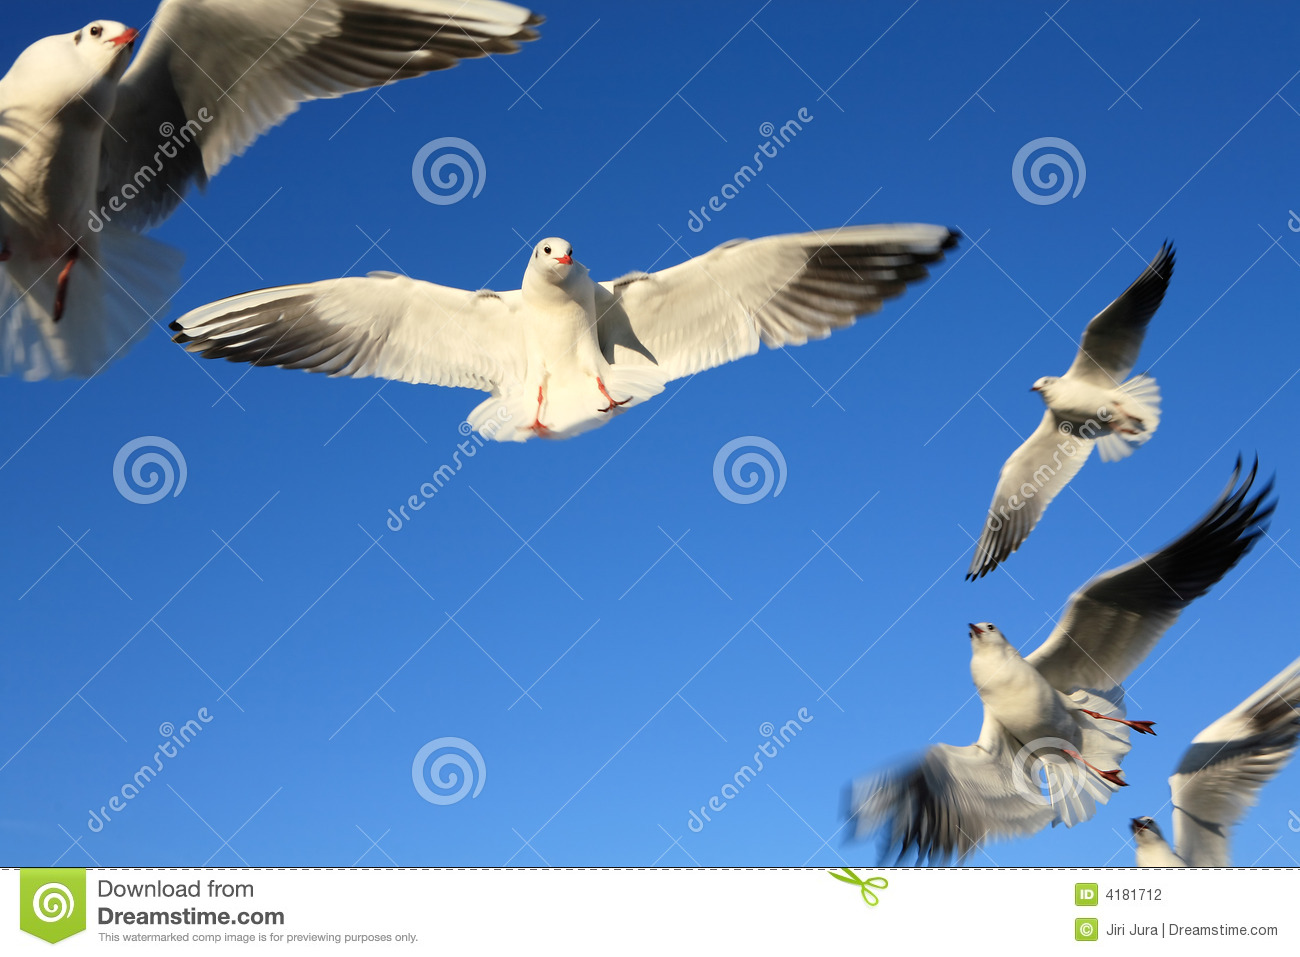 Stock Photography Seagull Birds Flying Image4181712